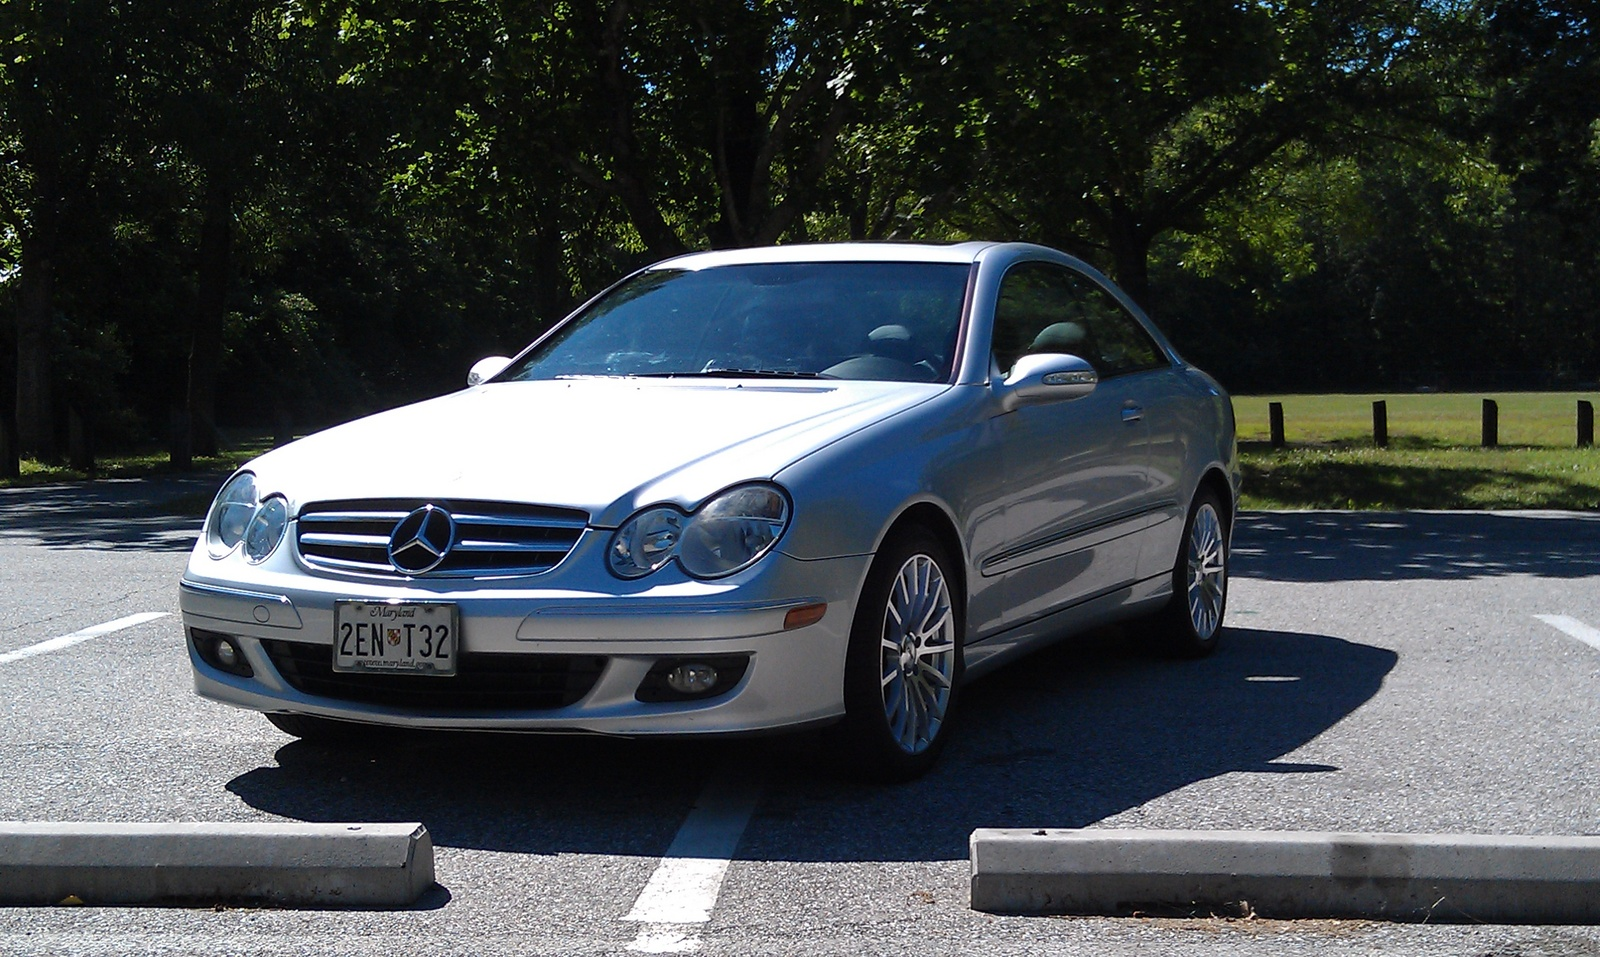 2006 mercedes benz clk class pictures cargurus for 2010 mercedes benz clk350